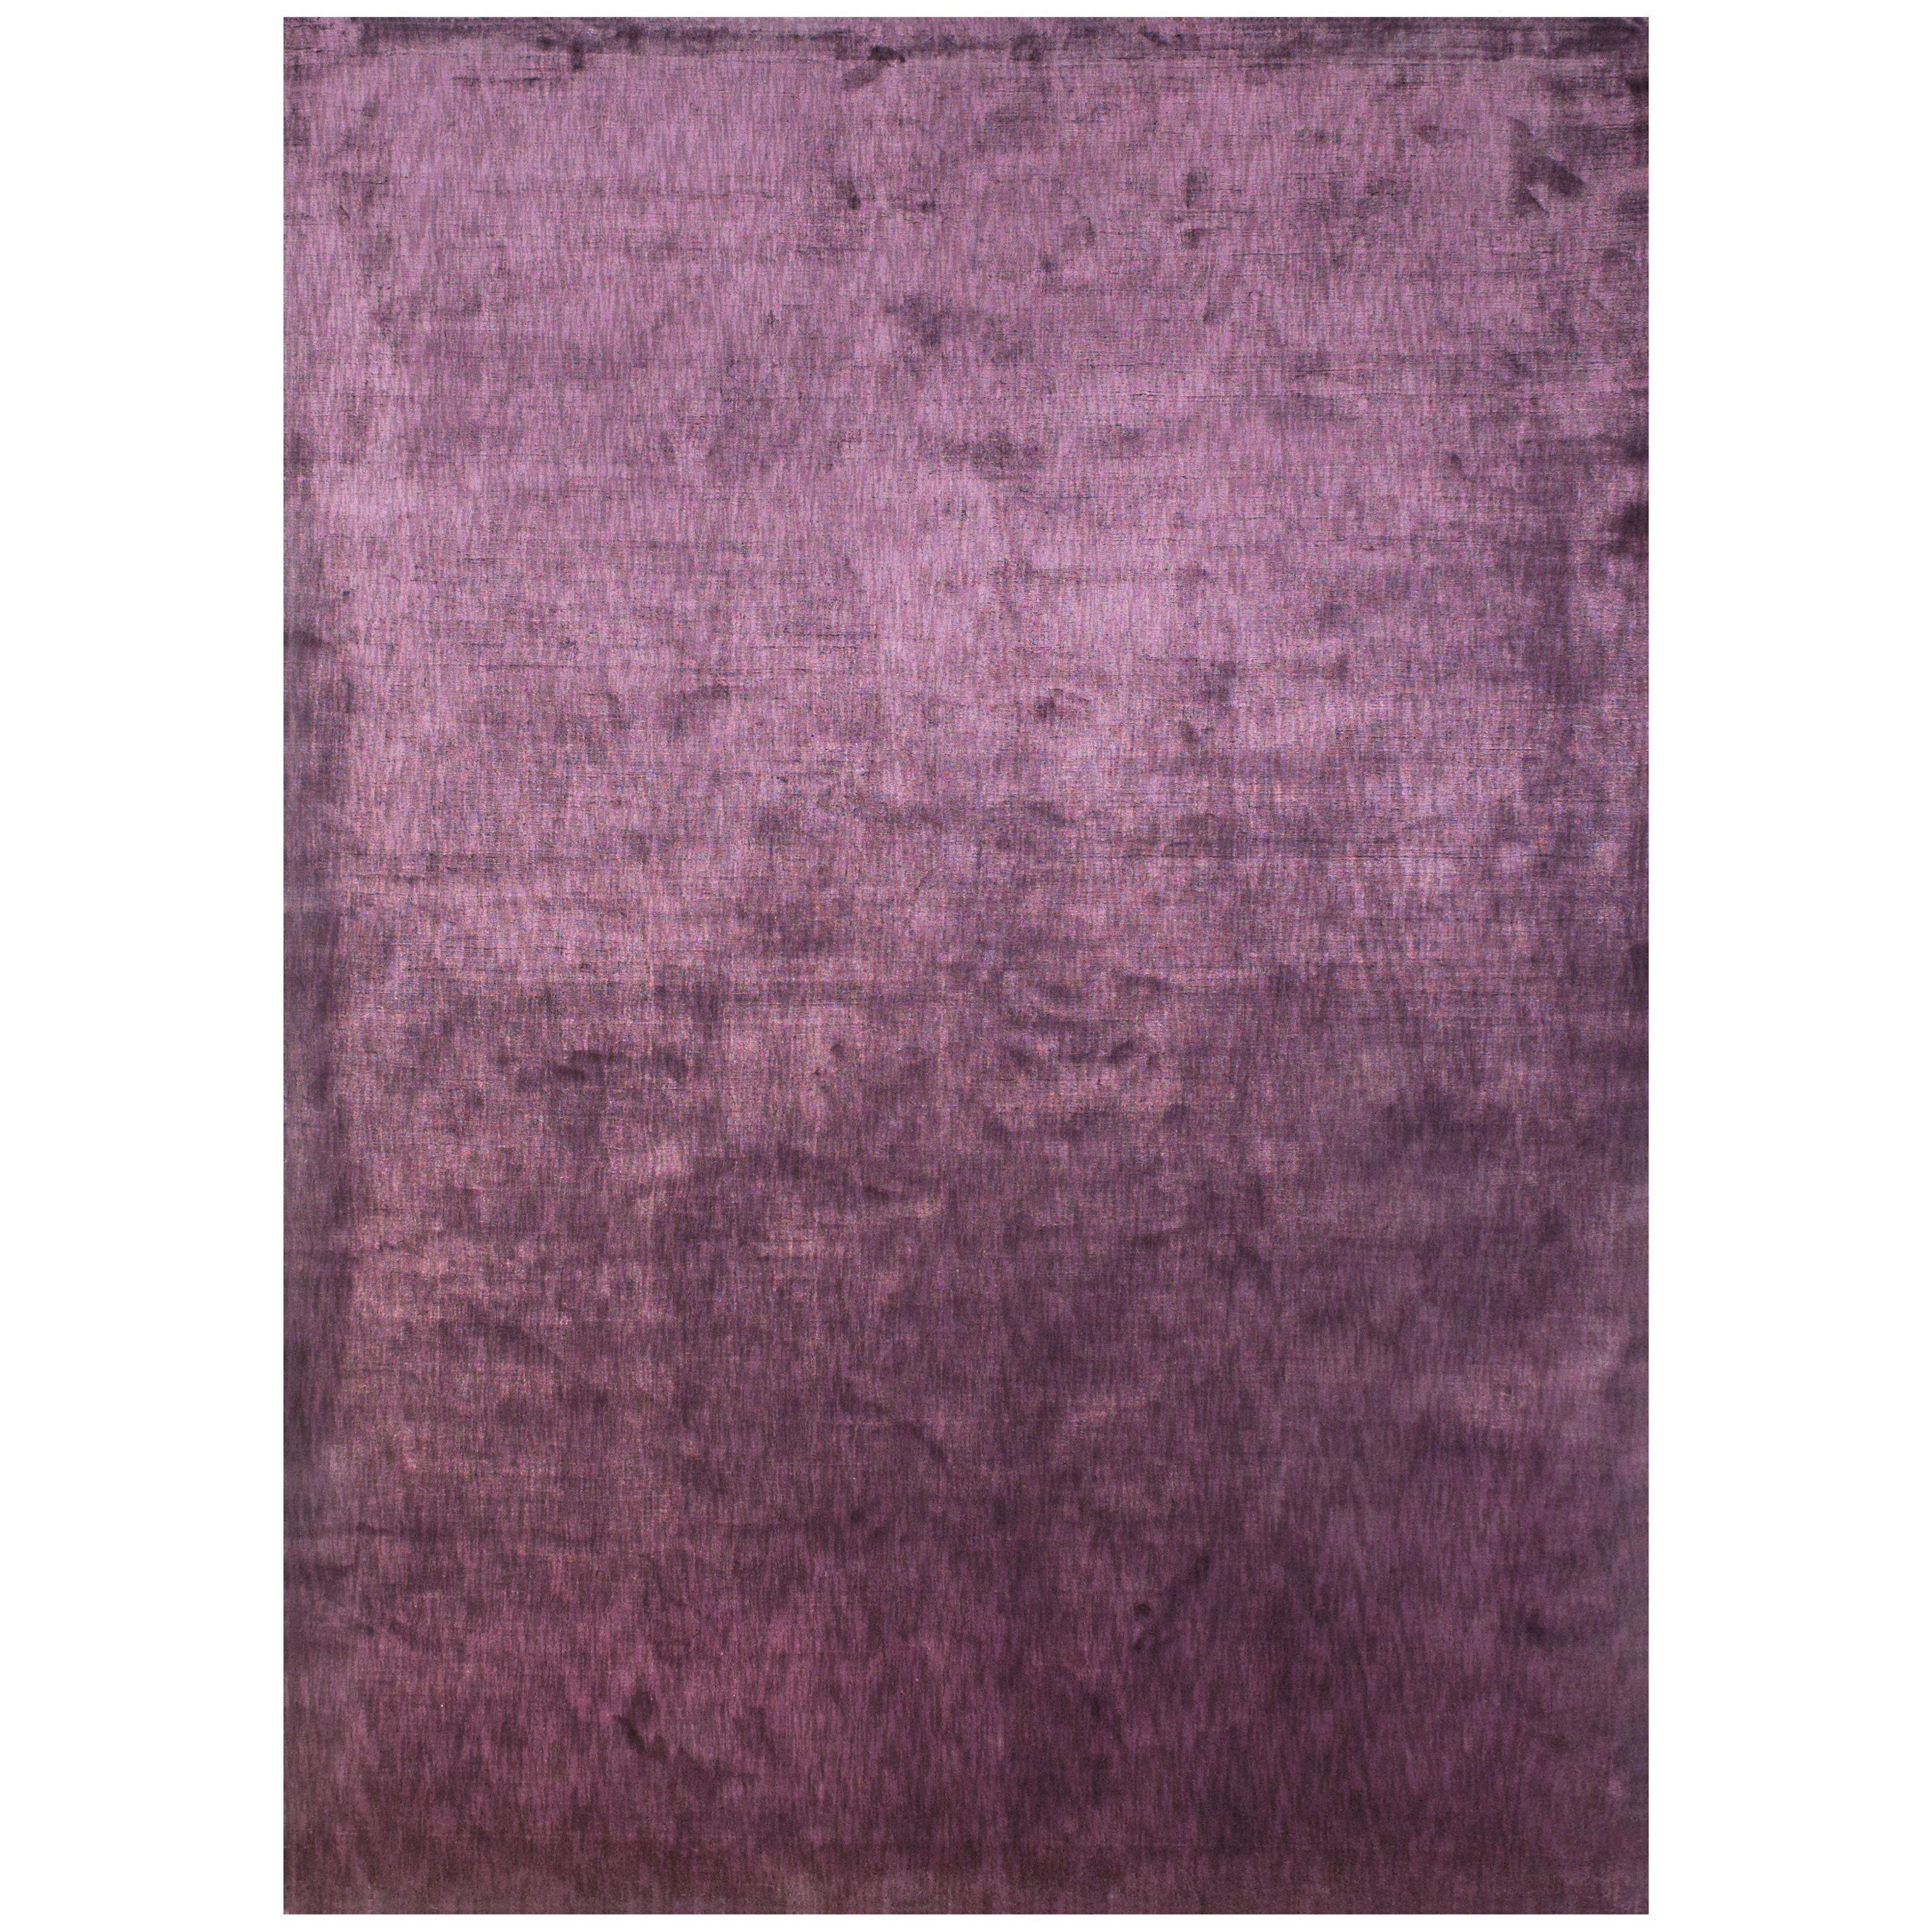 Marlowe Plum 4' x 6' Area Rug by Feizy Rugs at Jacksonville Furniture Mart